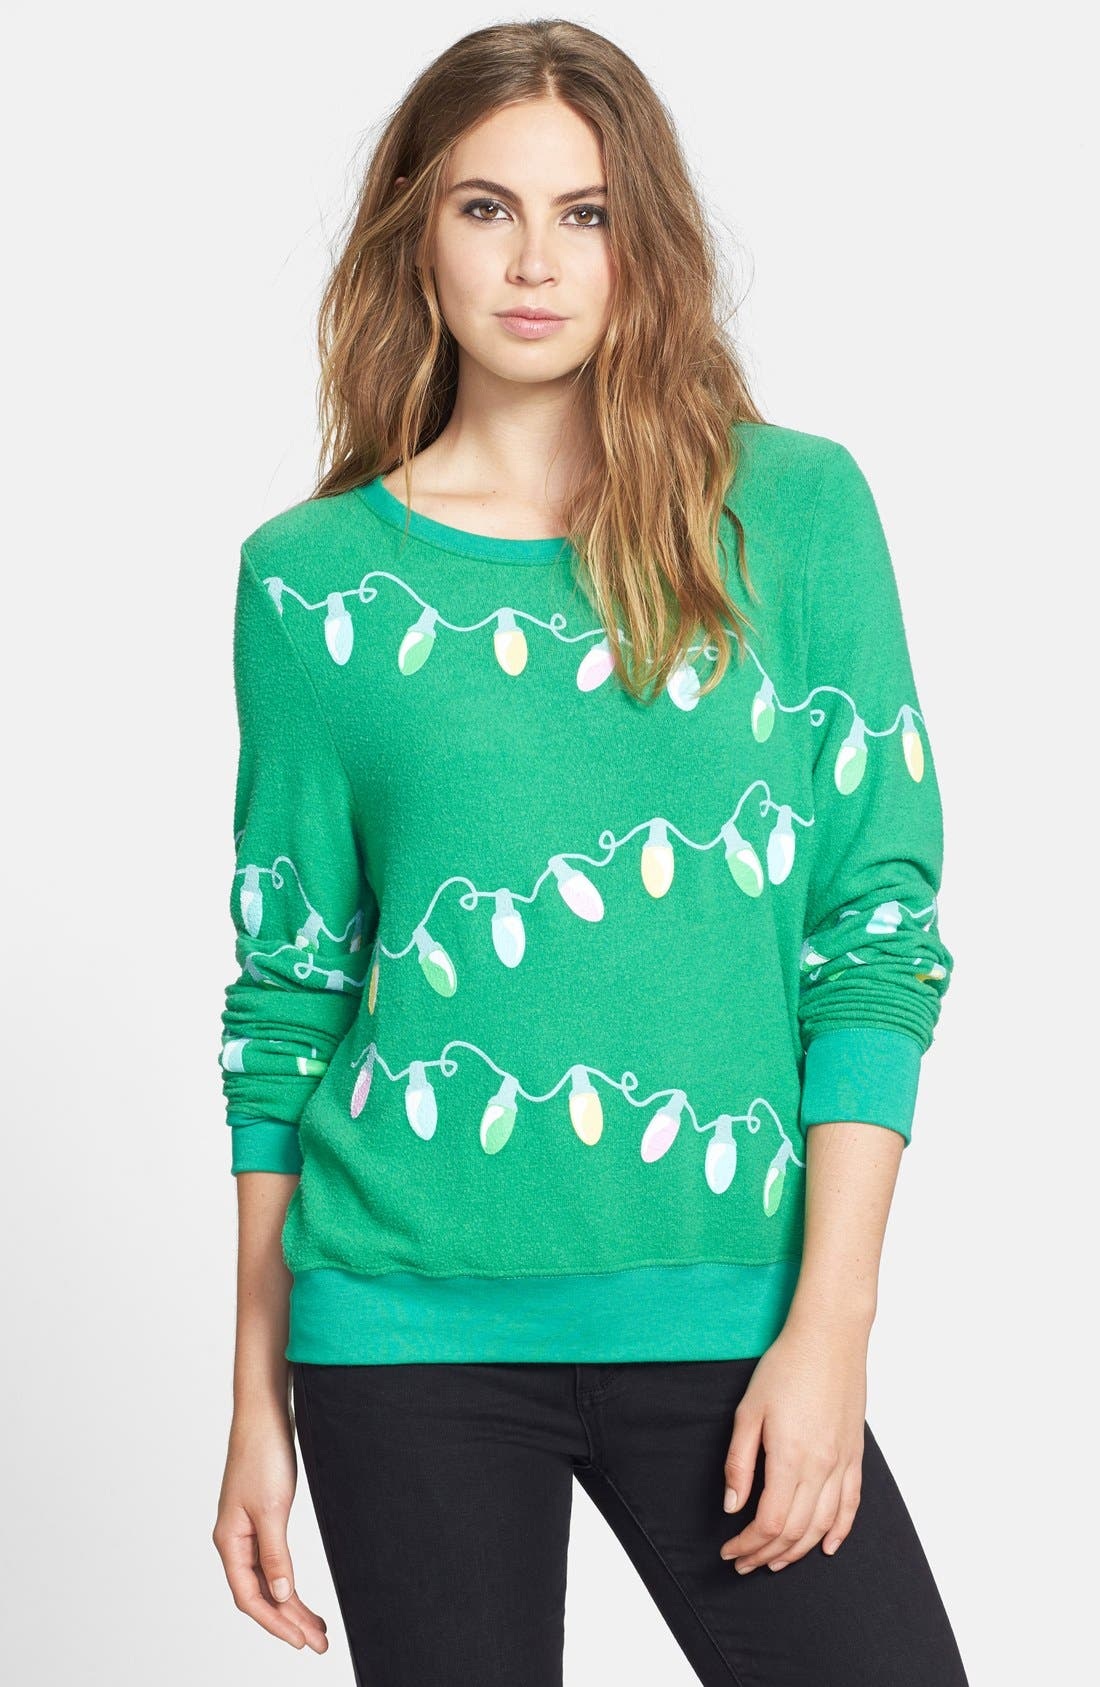 Alternate Image 1 Selected - Wildfox 'Glowing Lights' Sweatshirt